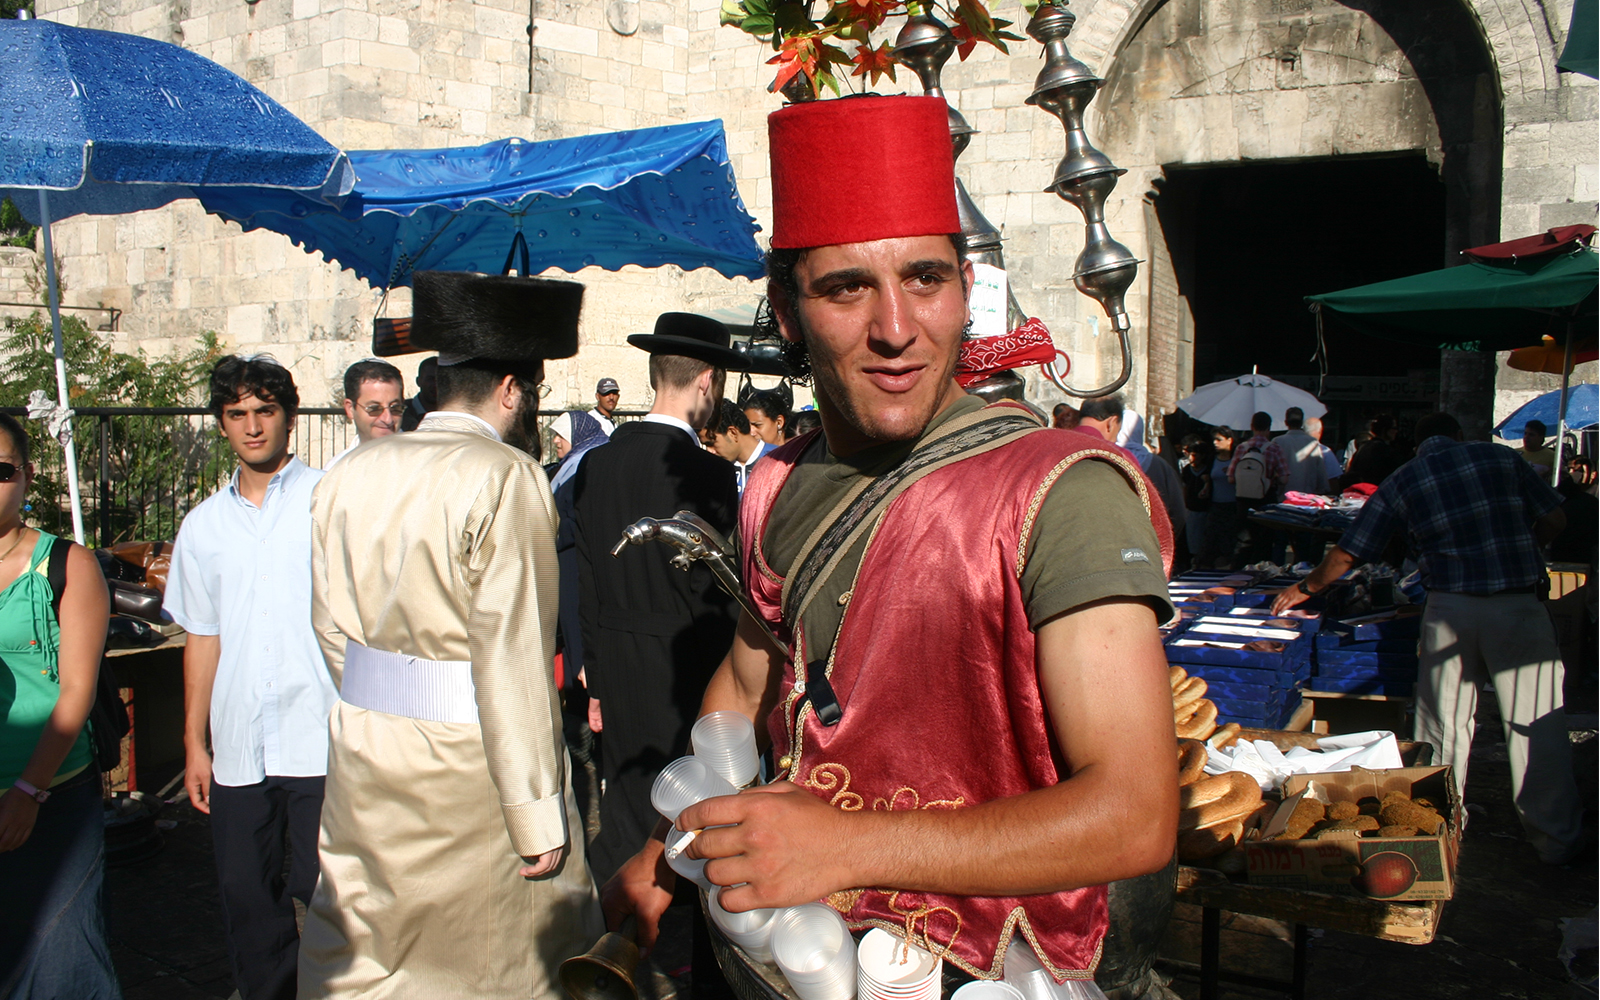 Drinks and snacks are sold to passersby outside Damascus Gate. (Shmuel Bar-Am)